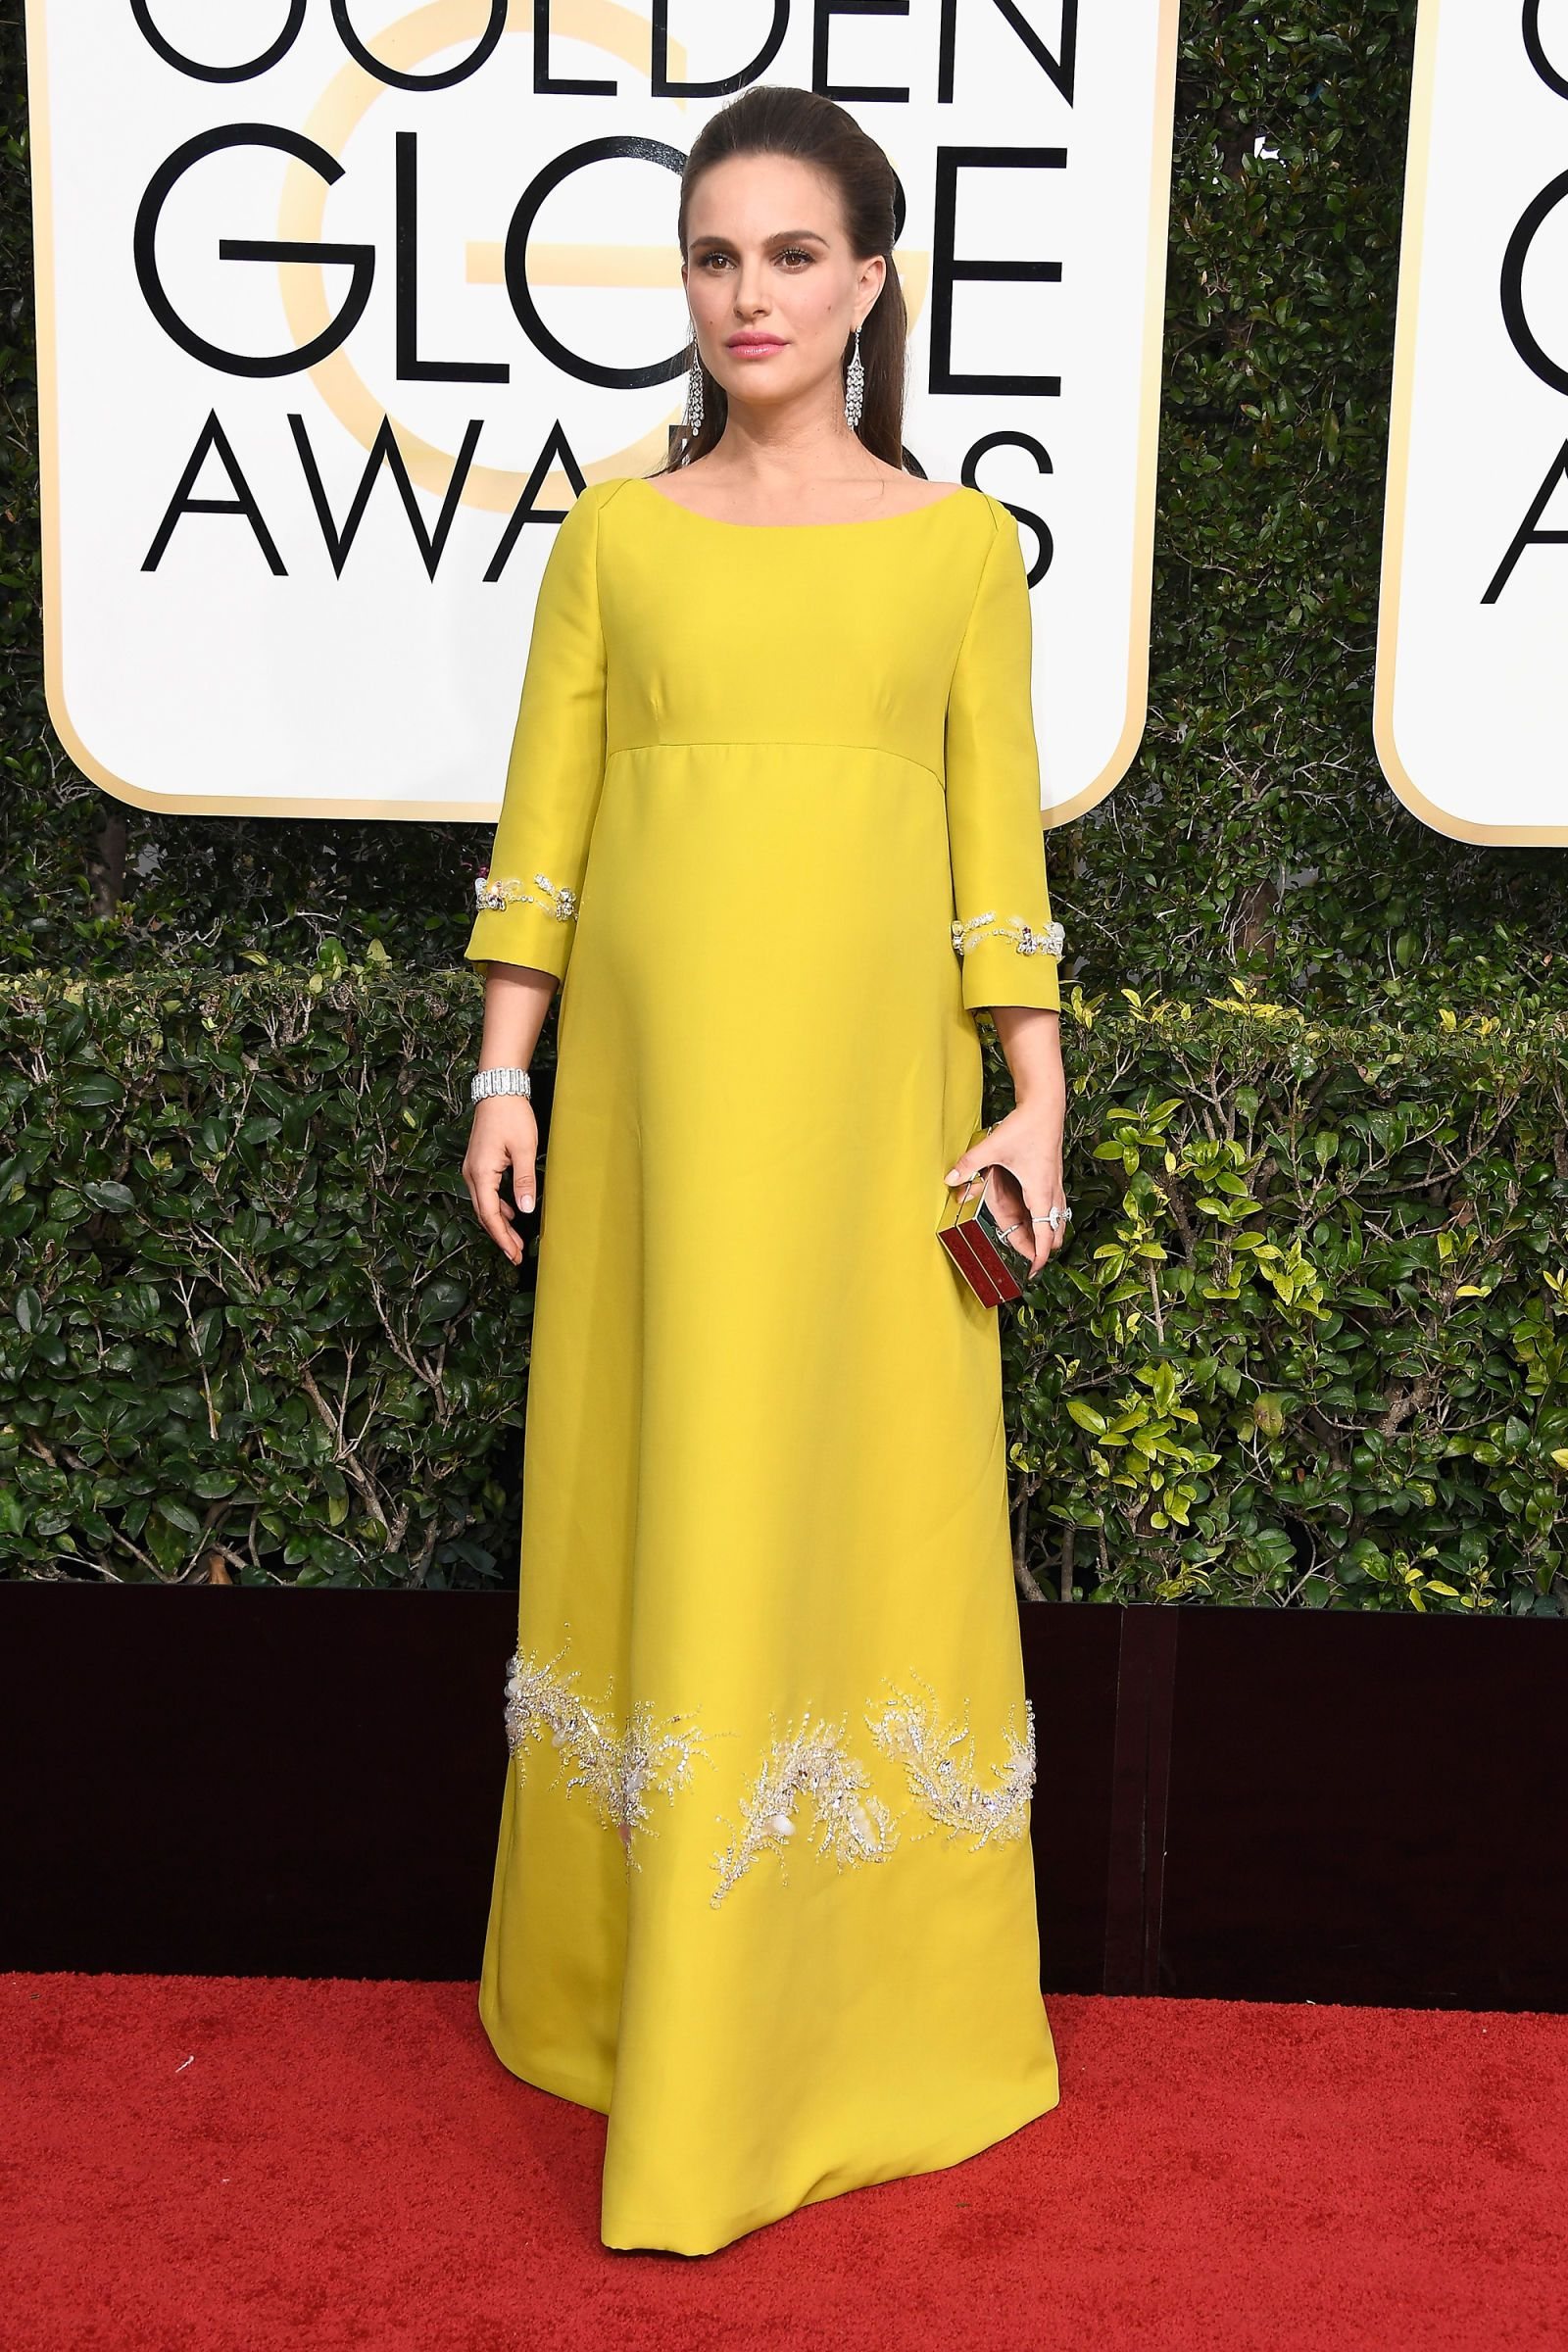 Roter Teppich Golden Globes Thelist Best Dressed On The Golden Globes Red Carpet Kardelen